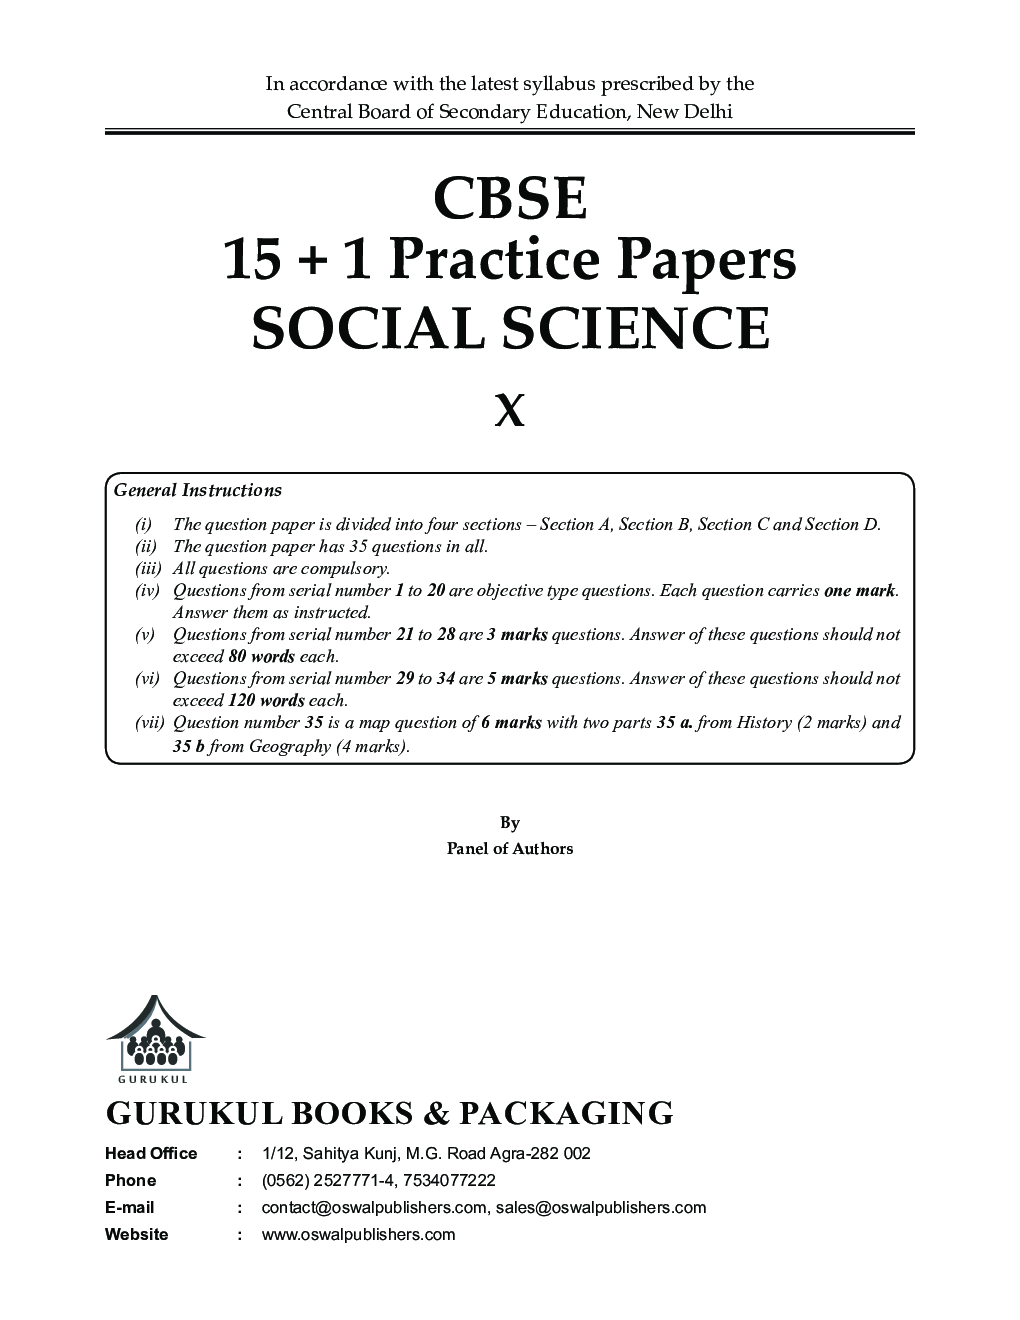 Oswal CBSE 15 + 1 Practice Papers - Social Science For Class X (For 2020 Exams) - Page 2